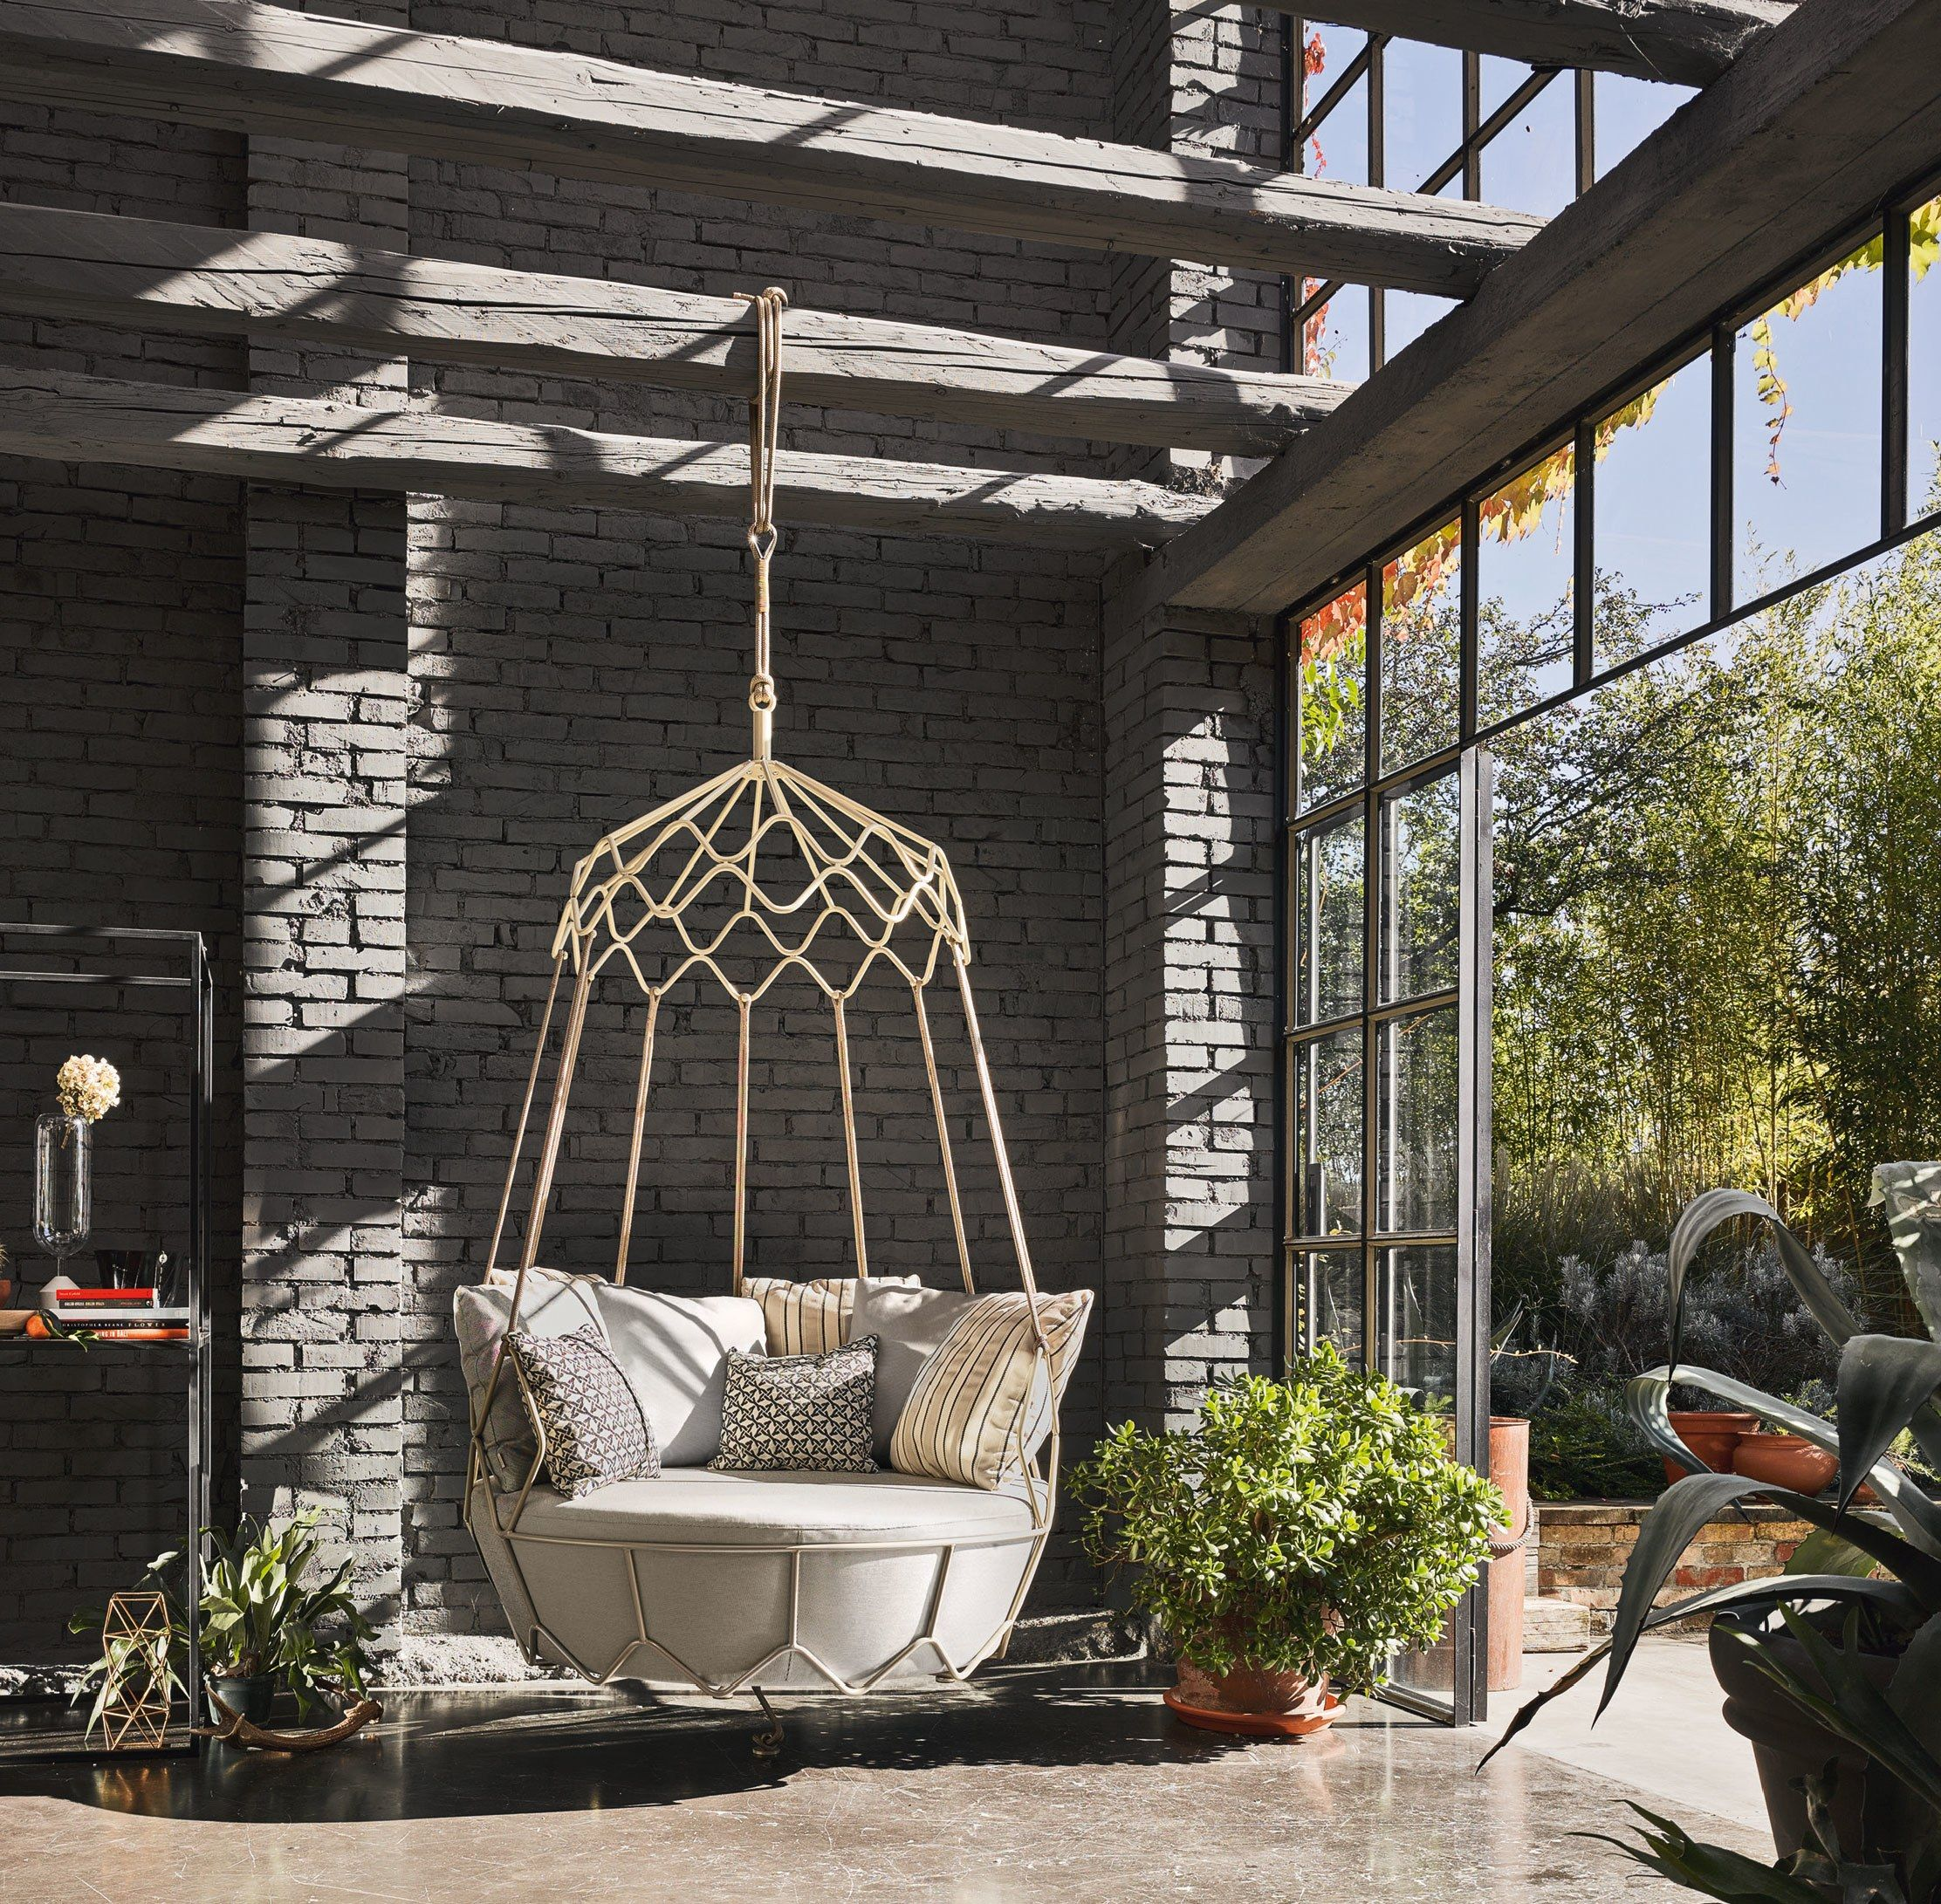 Roberti S Sculptural Gravity Chair Hanging Out Never Looked So Elegant From 13 000 Robertirattan